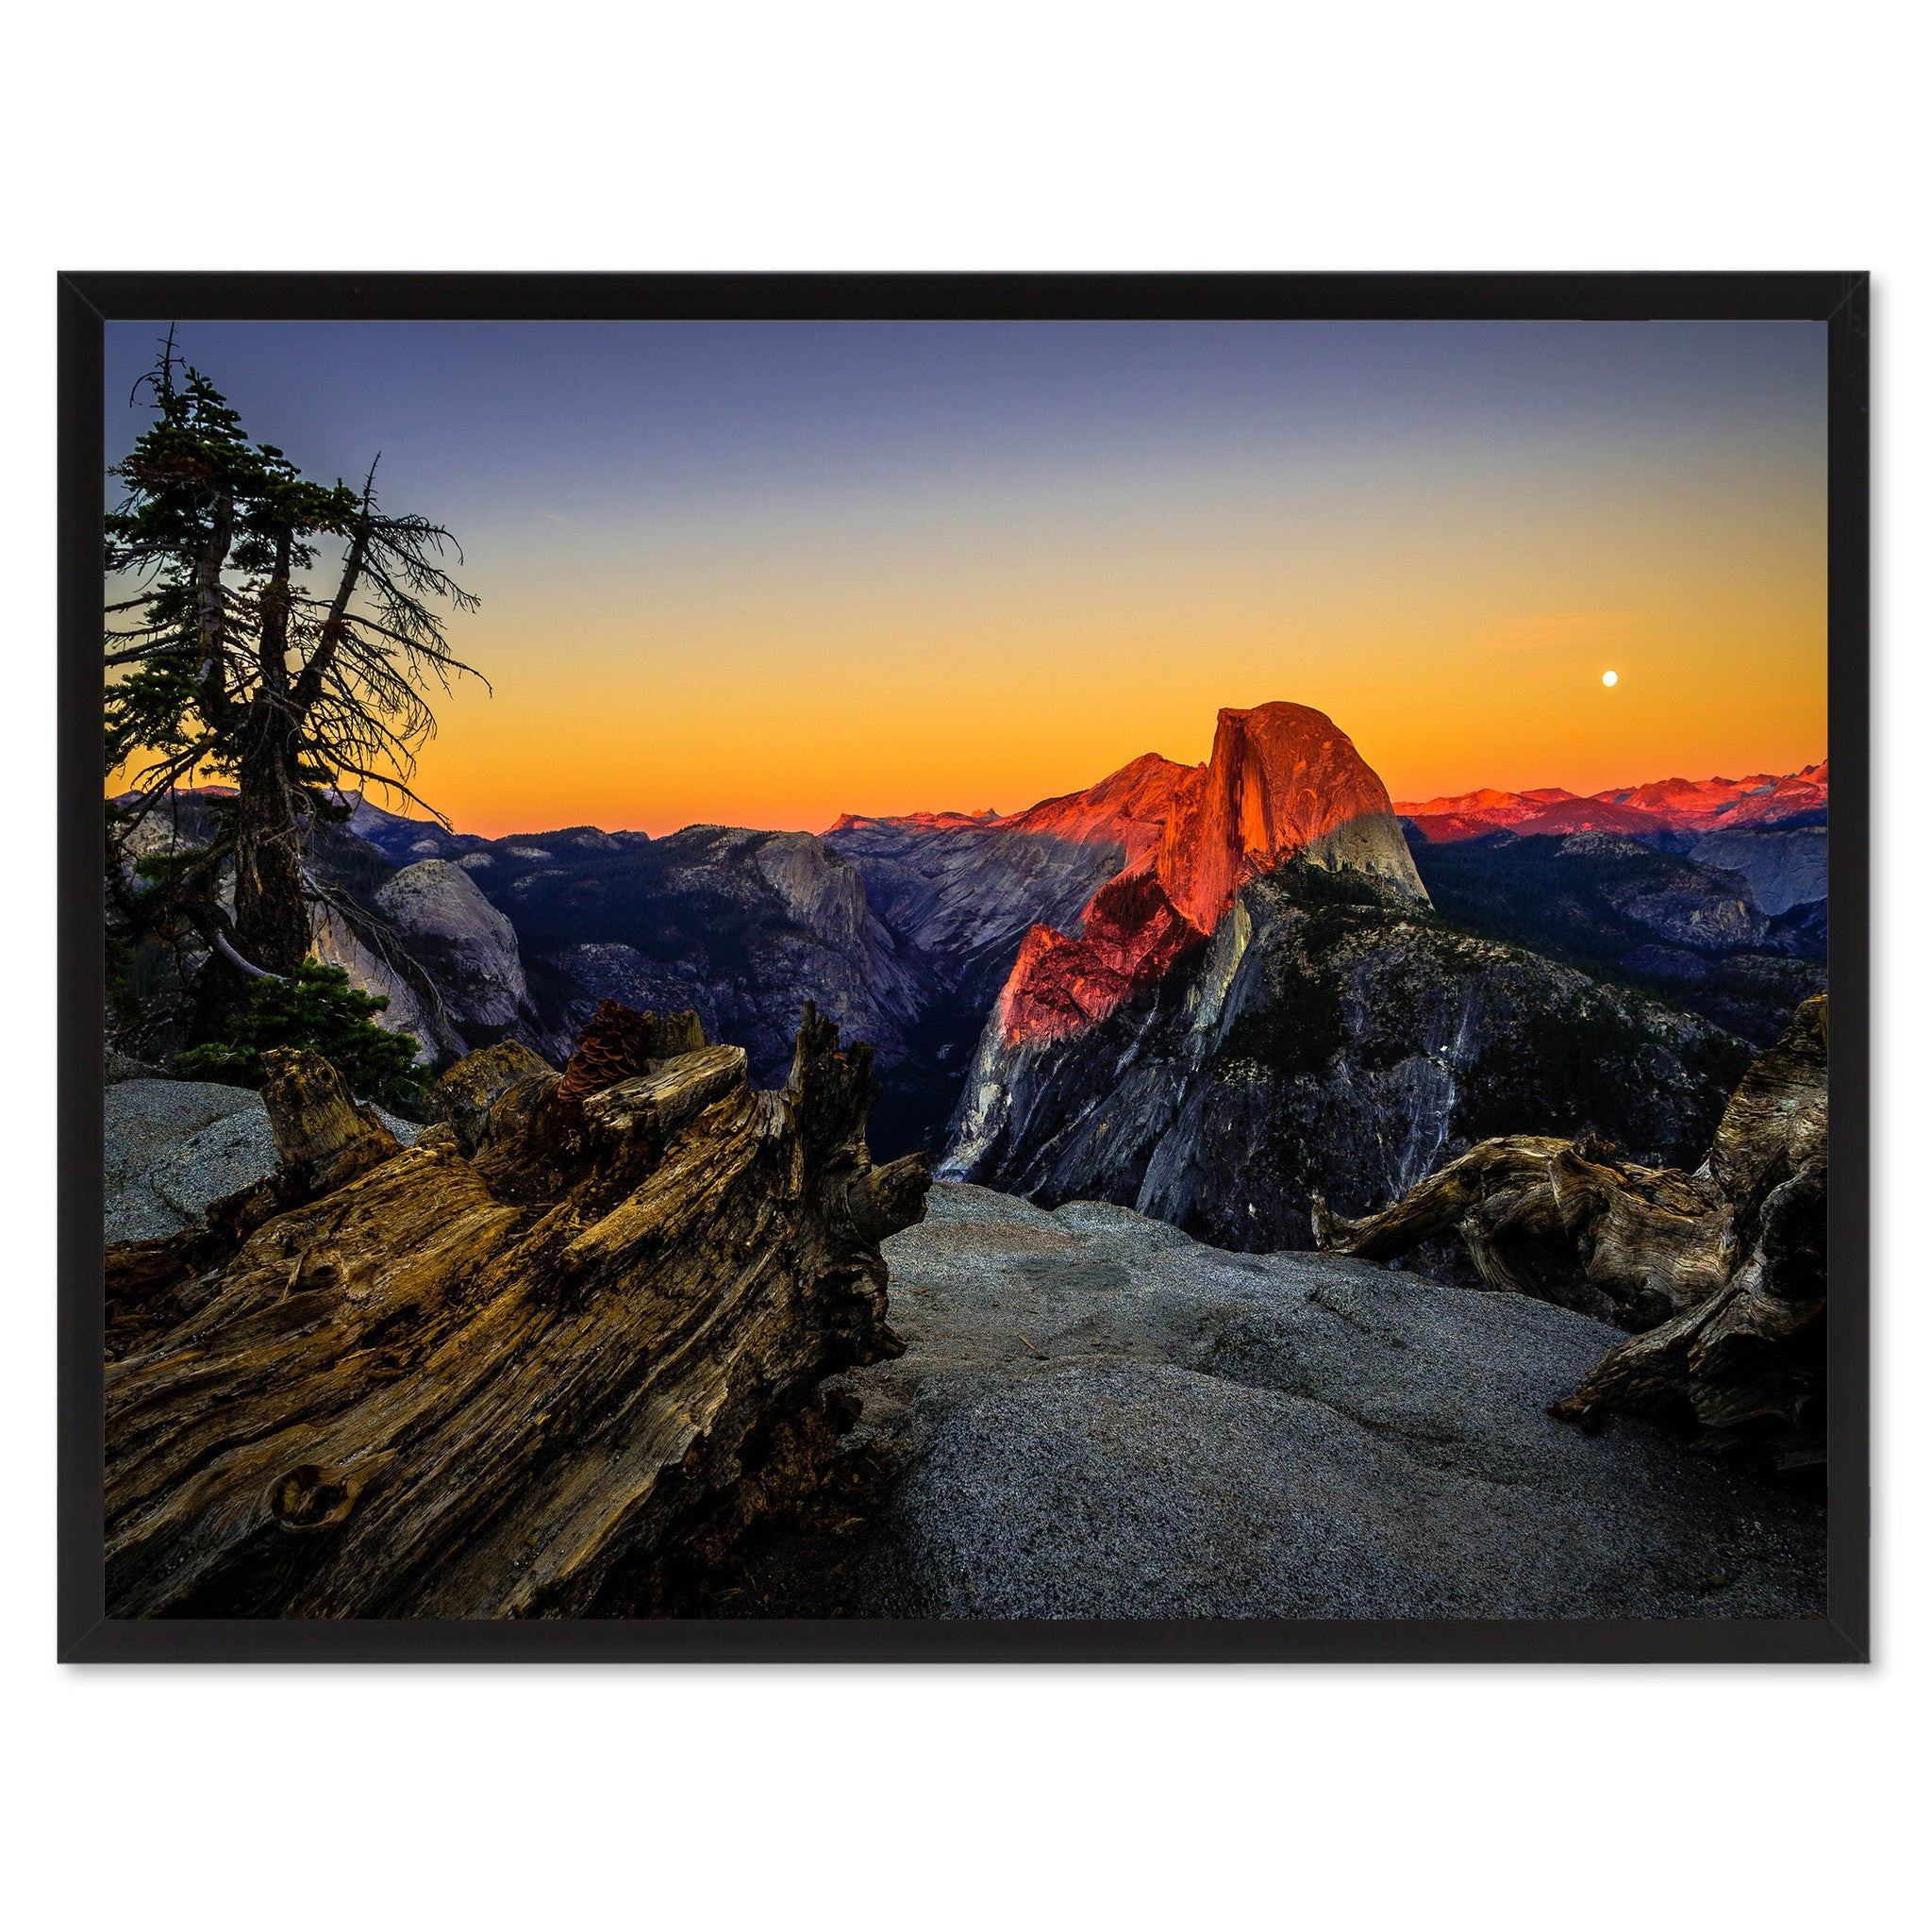 Half Dome California Landscape Photo Canvas Print Pictures Frames Home Décor Wall Art Gifts